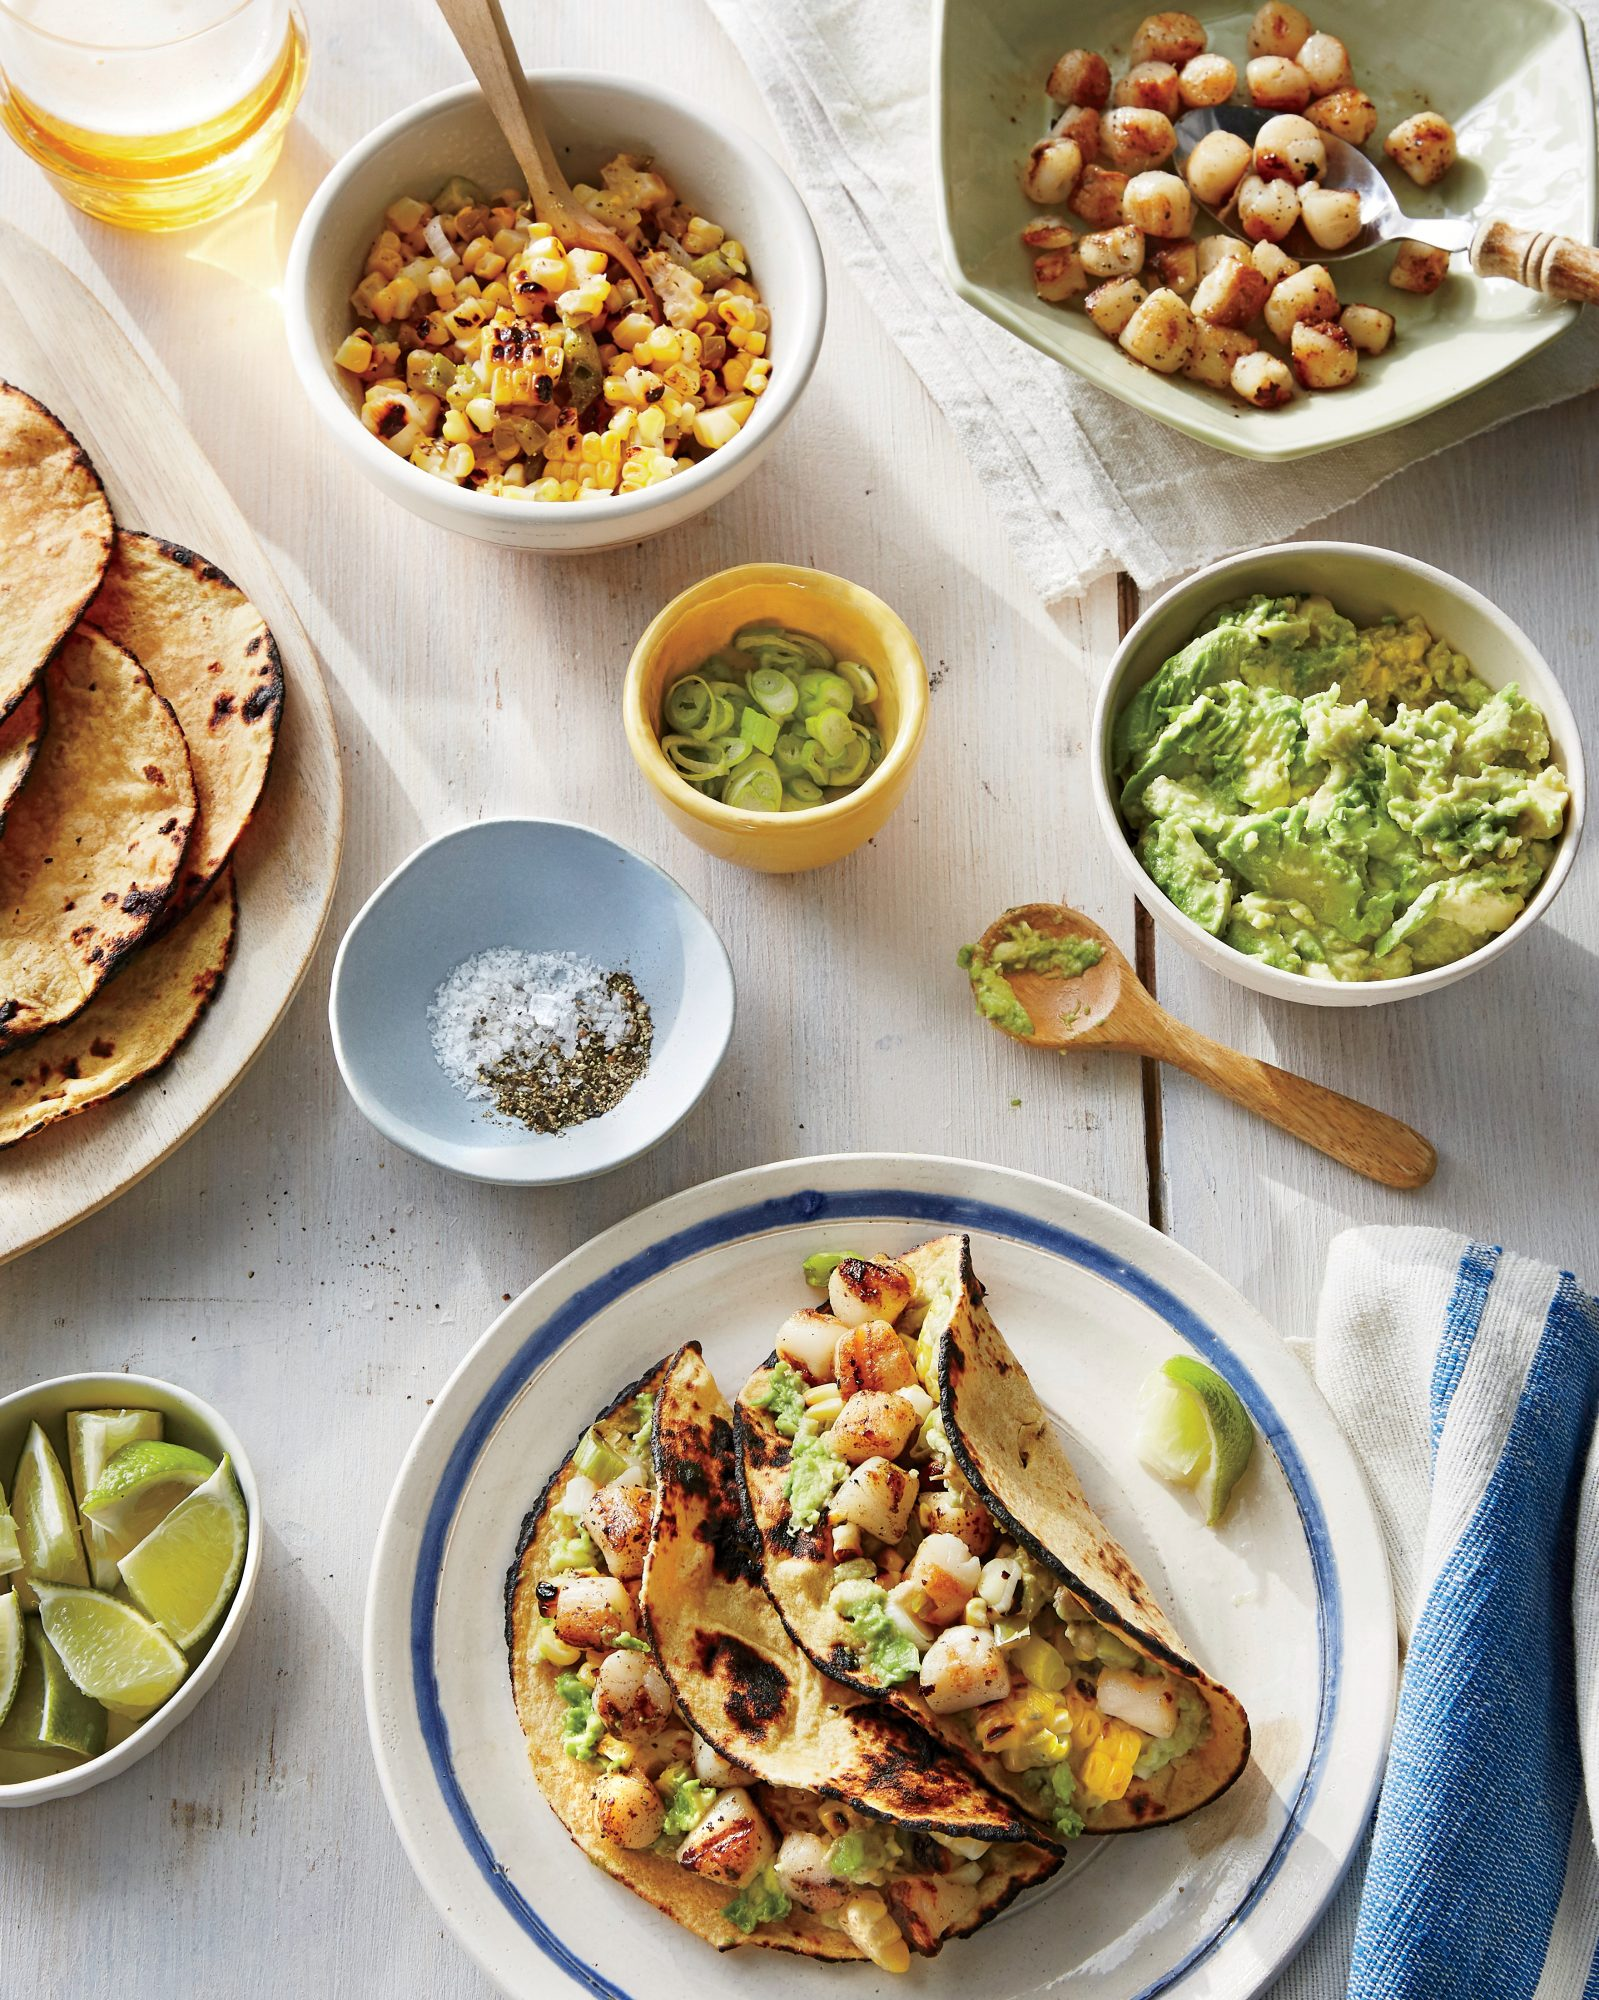 Grilled Scallop Tacos with Smashed Avocado and Charred Corn Pico